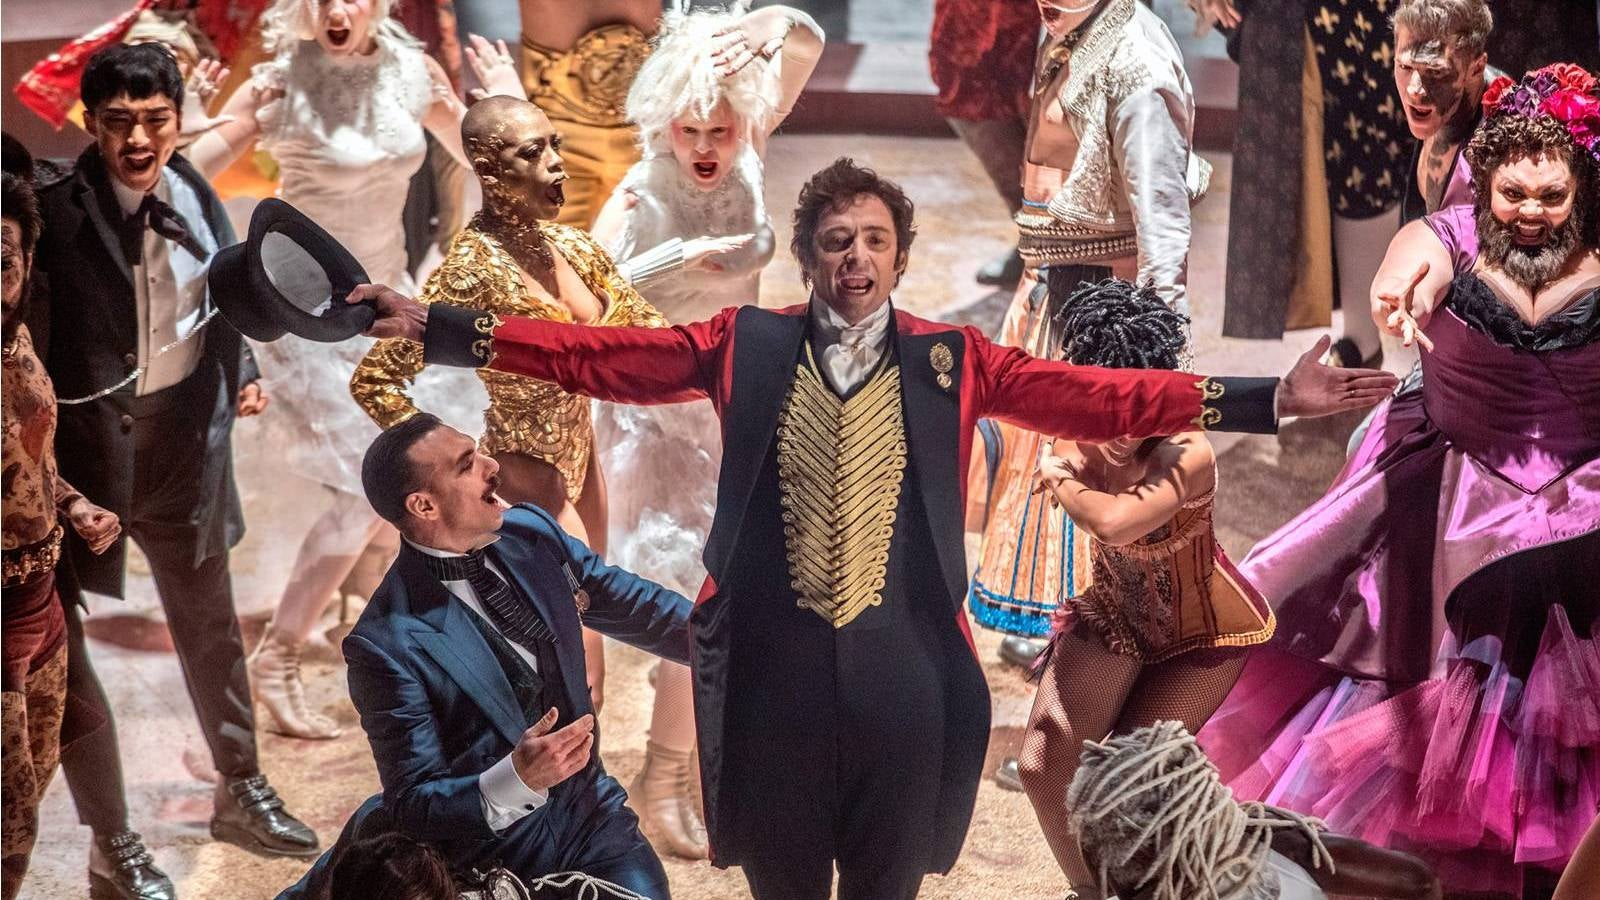 The Greatest Showman Is What Happens When A Real Person's Story Becomes Fantasy